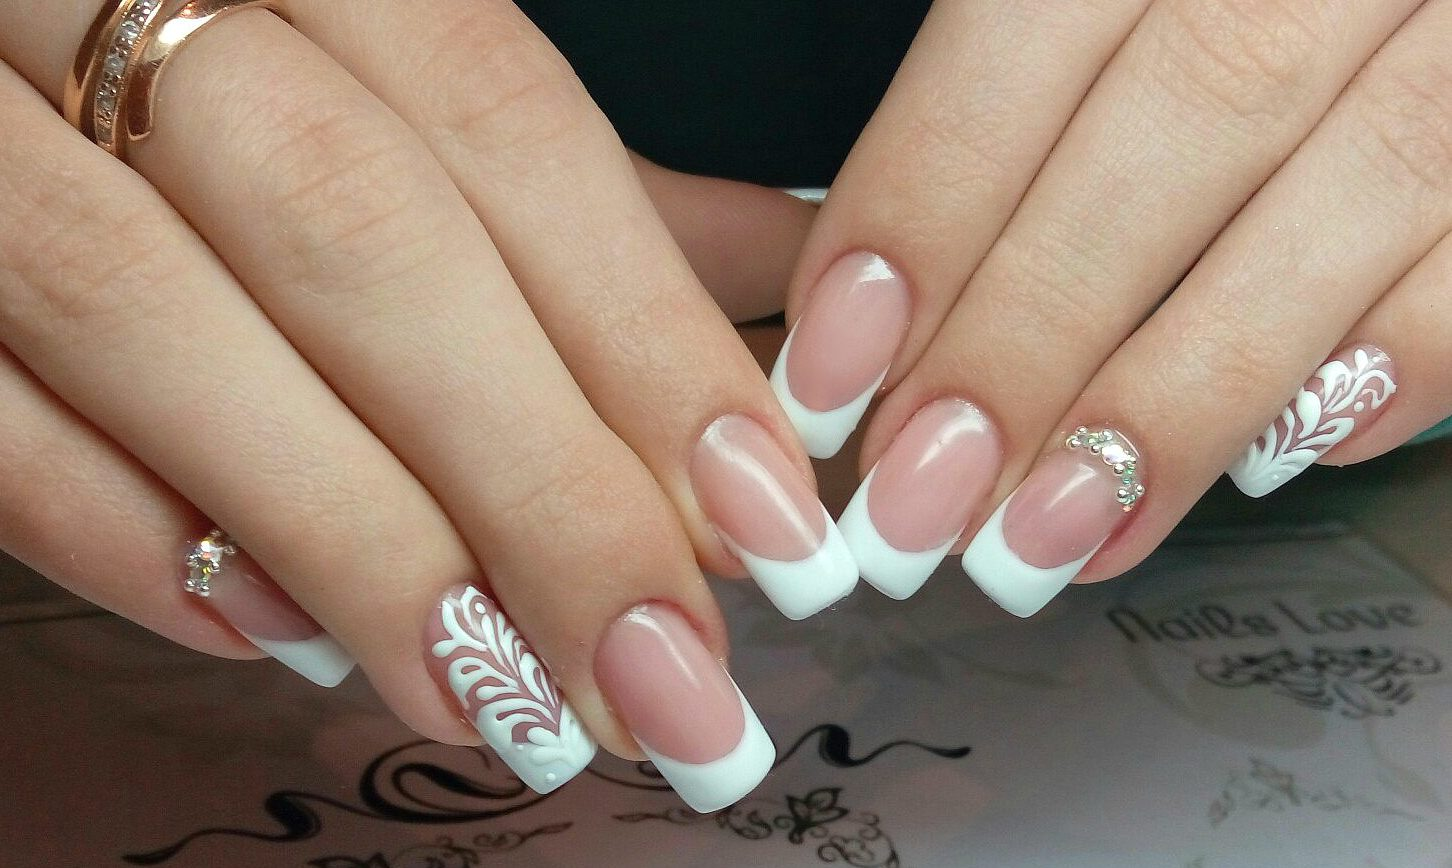 Festive French nails - The Best Images | BestArtNails.com